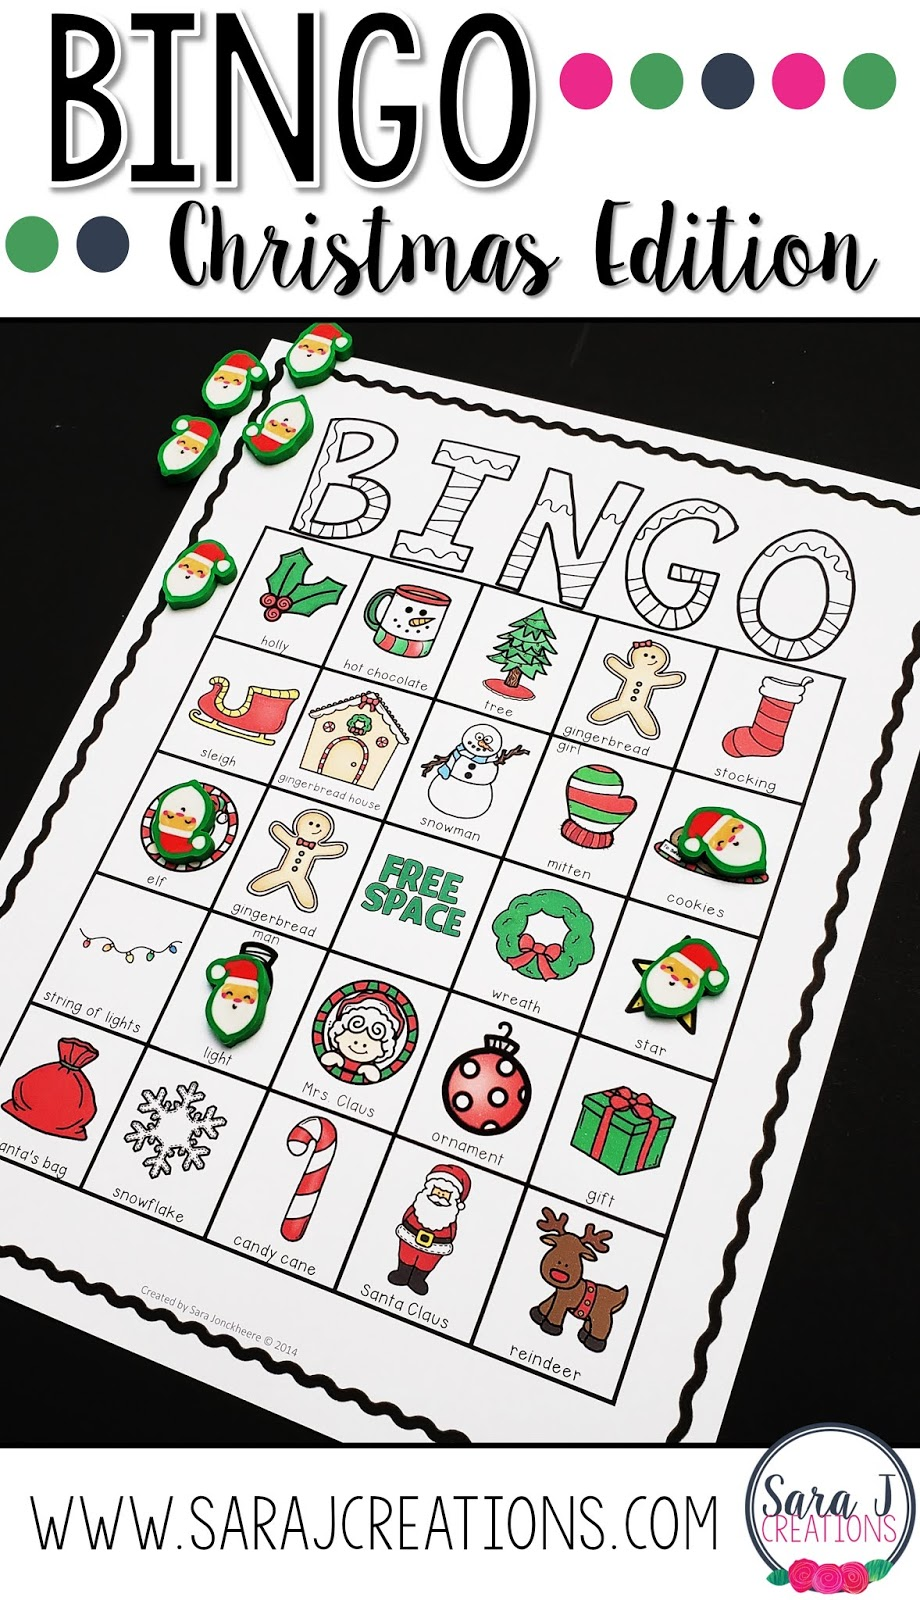 Christmas bingo is the perfect printable fun for a large group. With 30 different game boards in black and white and color, you can easily print and play with a large group. This is great for kids during a holiday party.